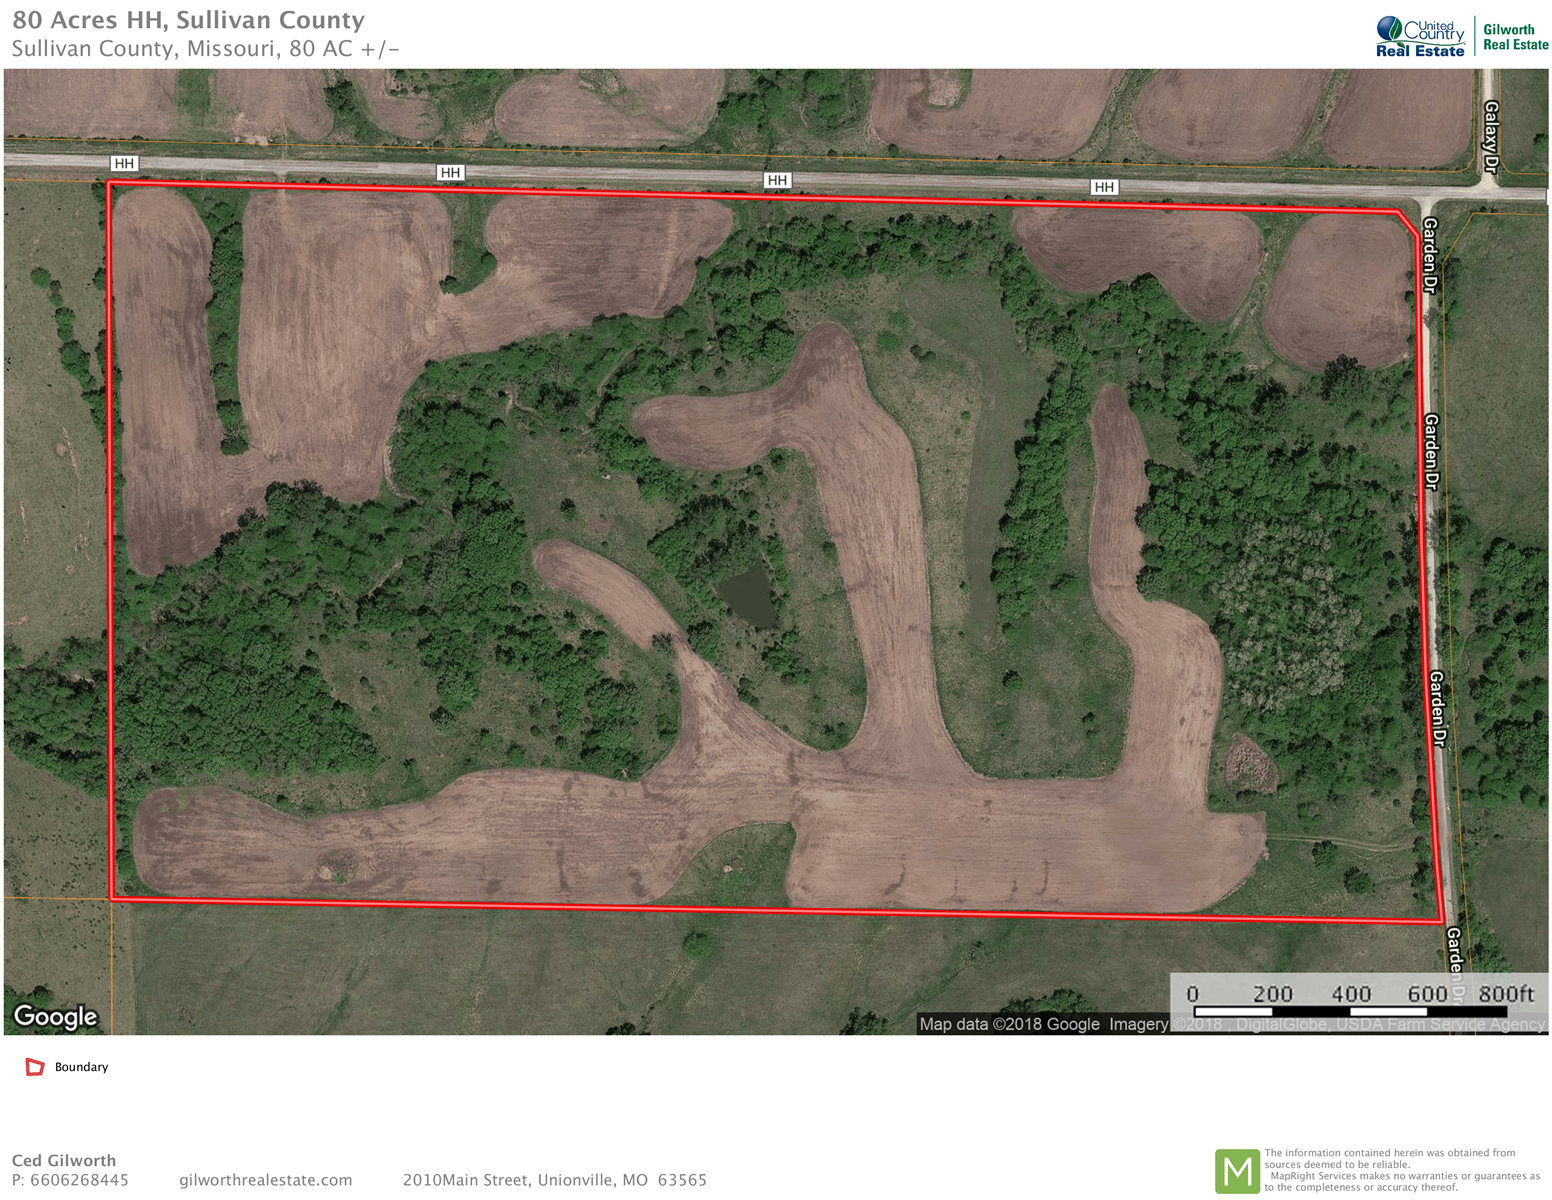 Land for sale near Green City, MO with hunting/row crop